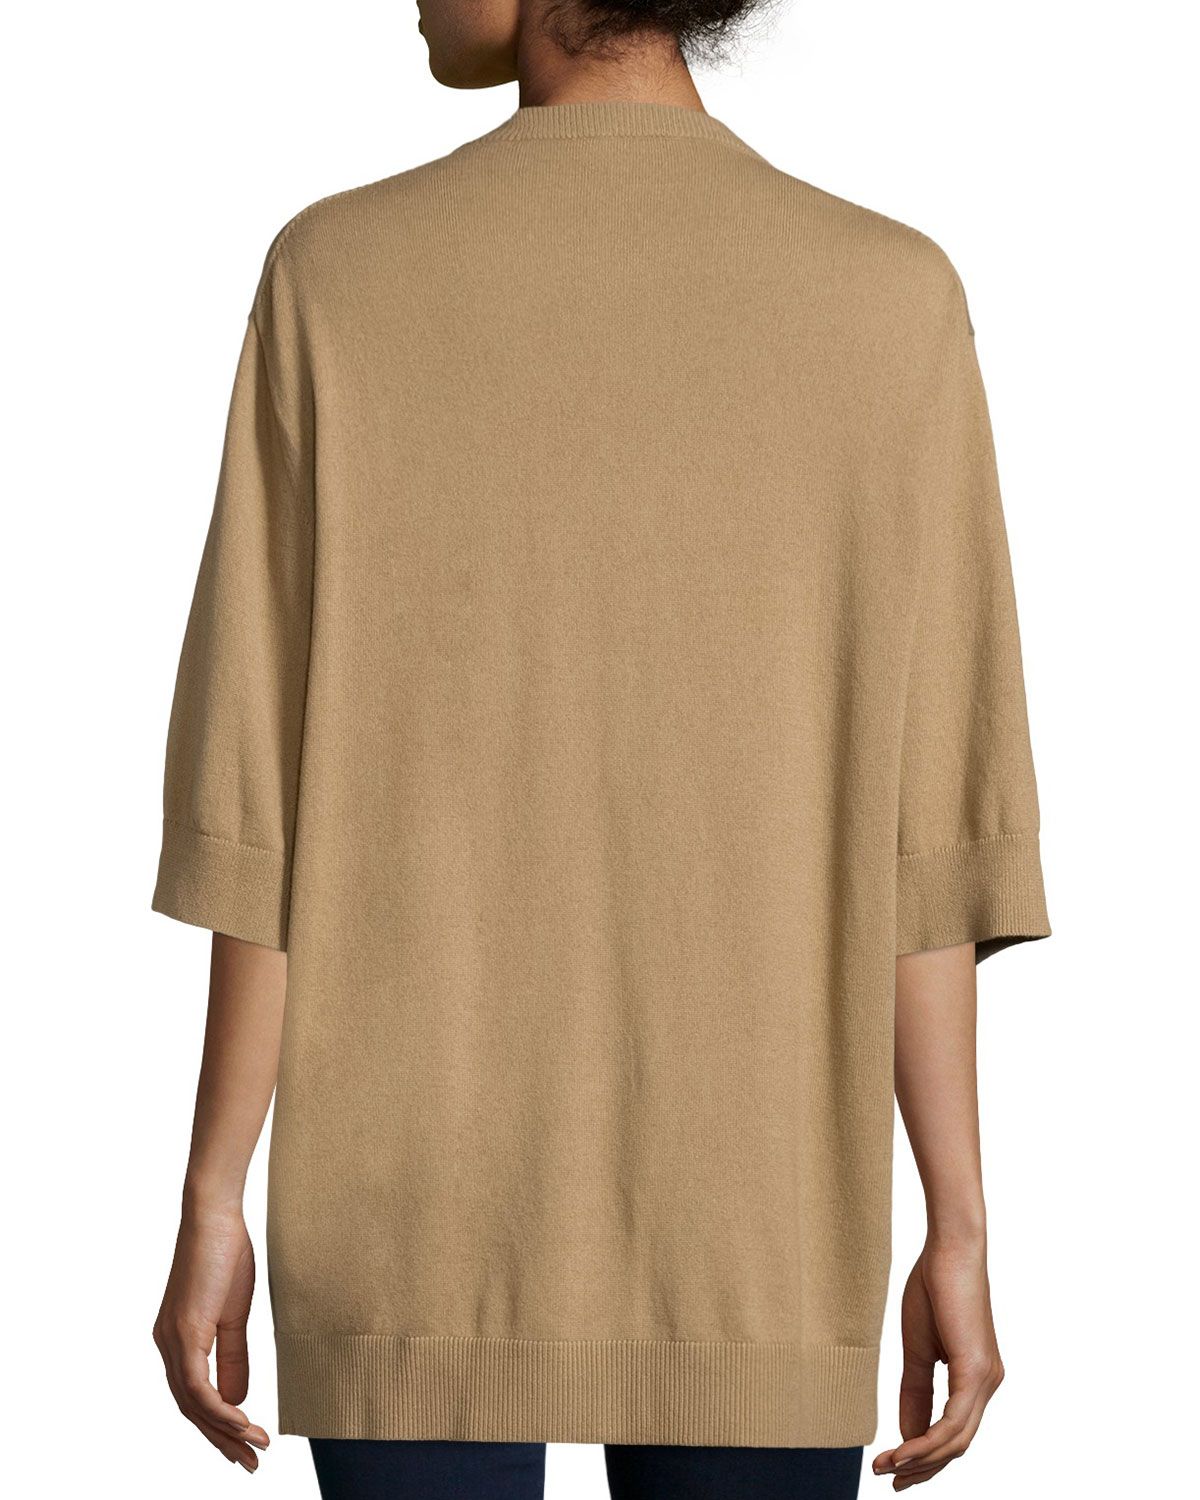 Michael kors Short-sleeve Button-front Cardigan in Natural | Lyst